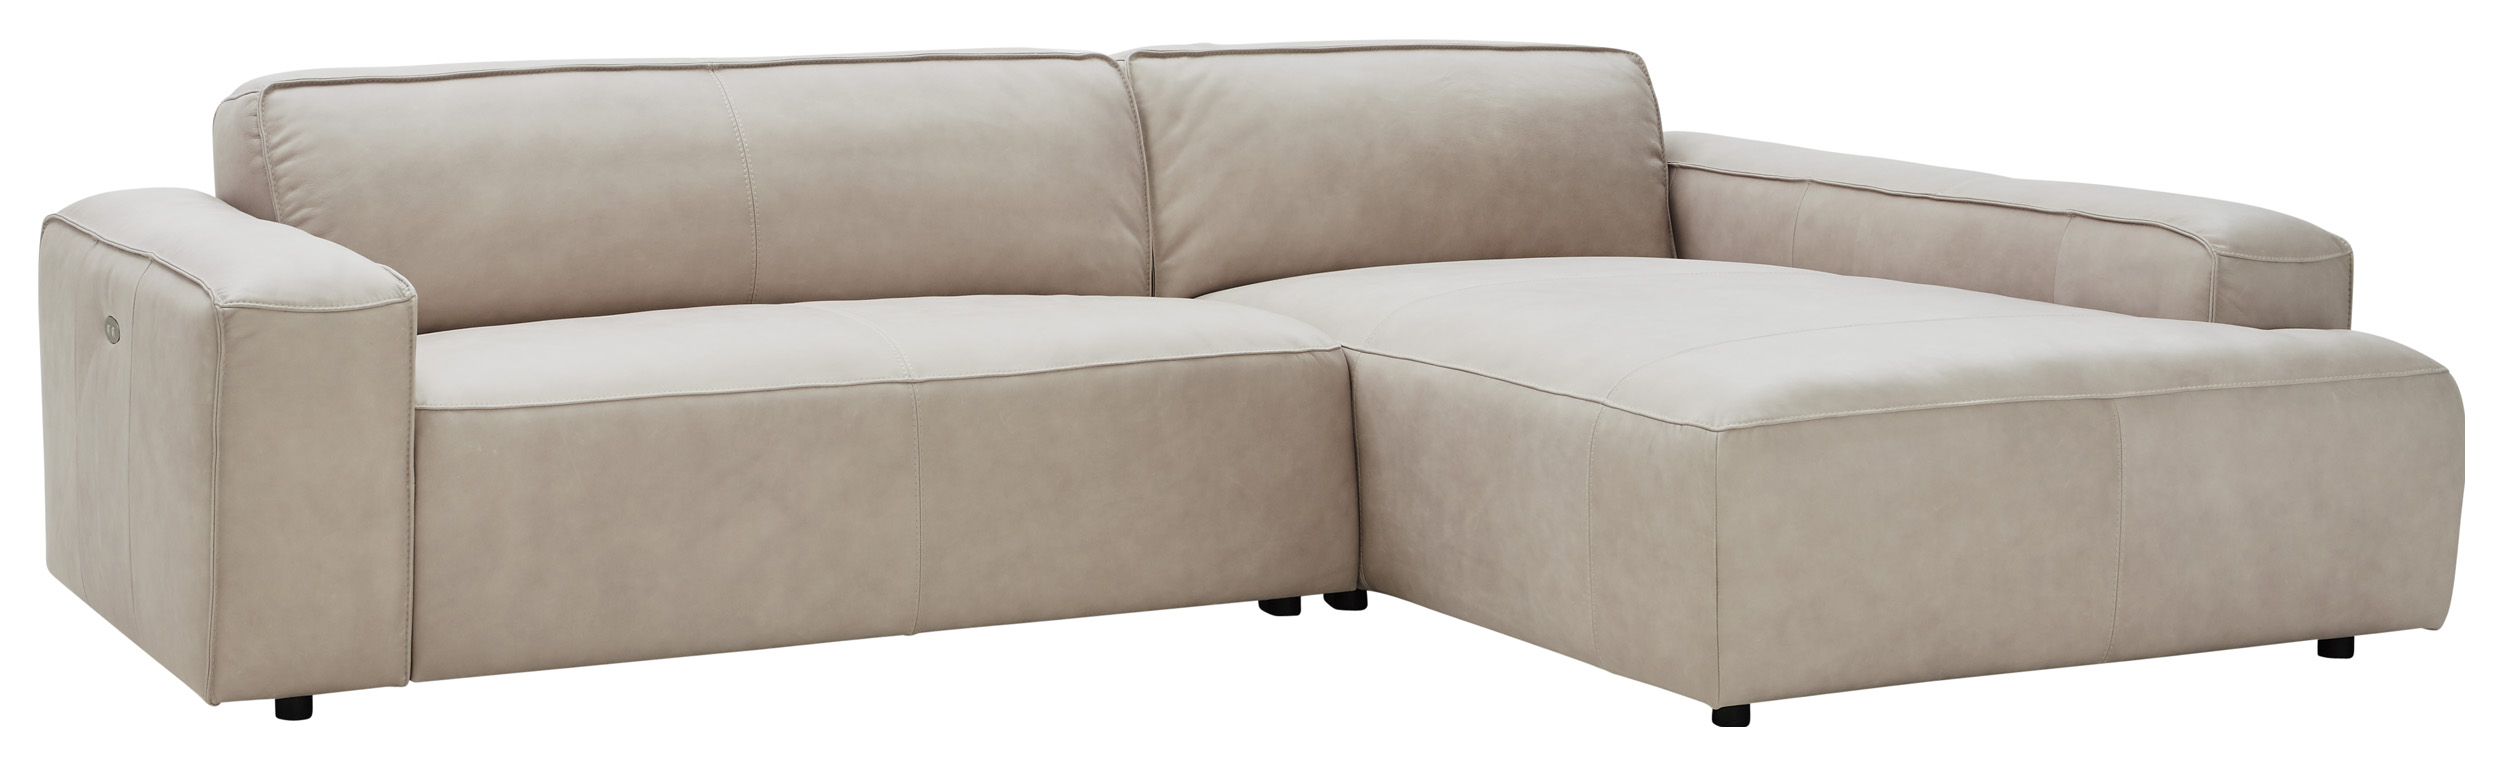 Eck Sofa Moderne Sofas In Denver